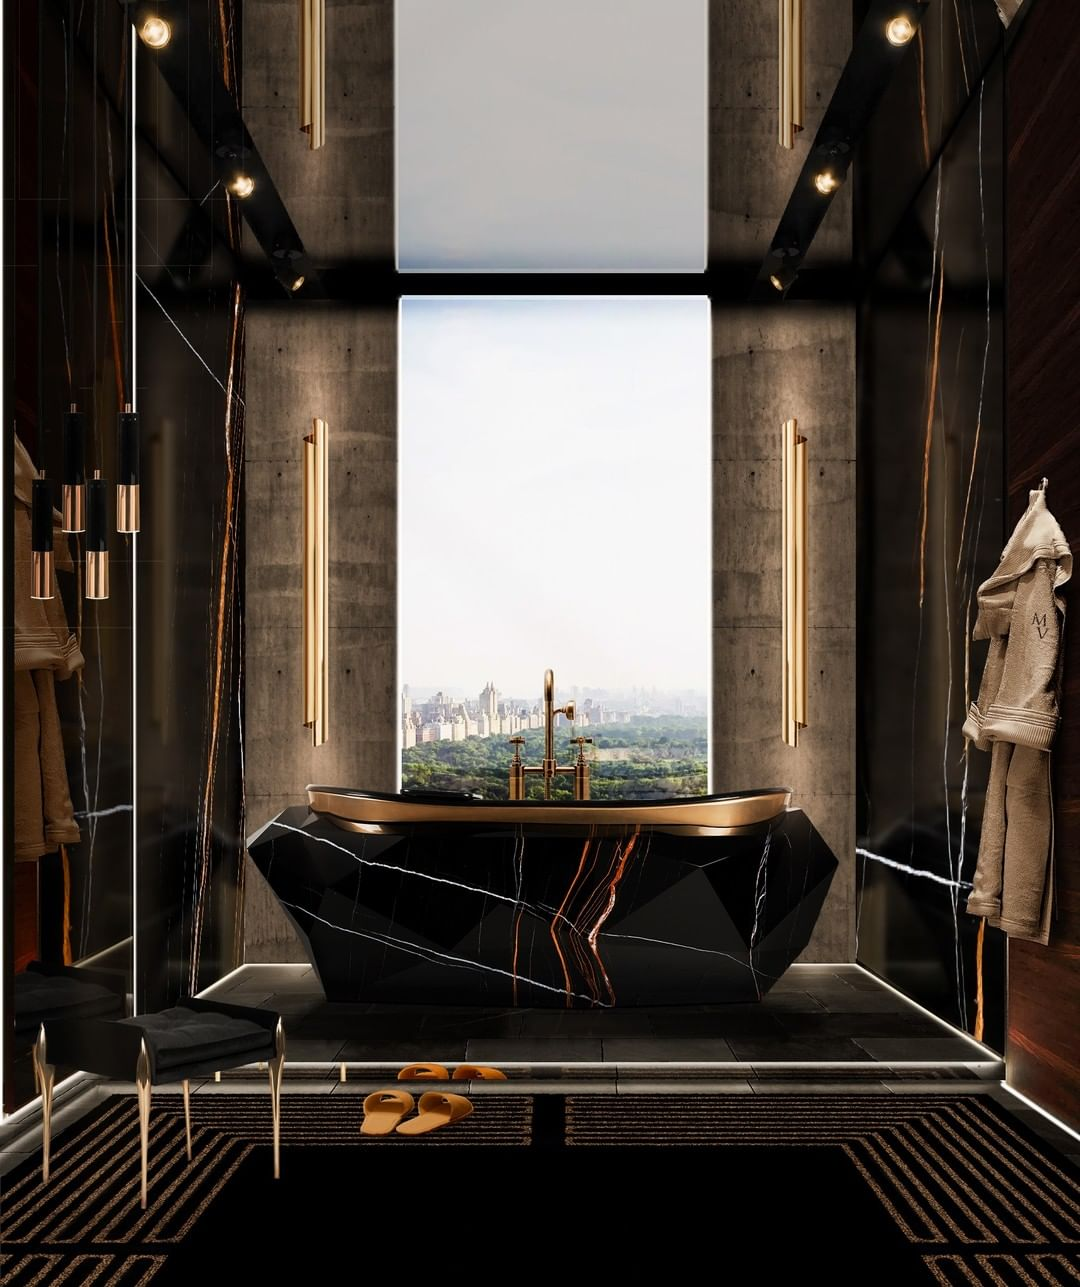 DREAM WITH THIS OPULENT MASTER BATHROOM